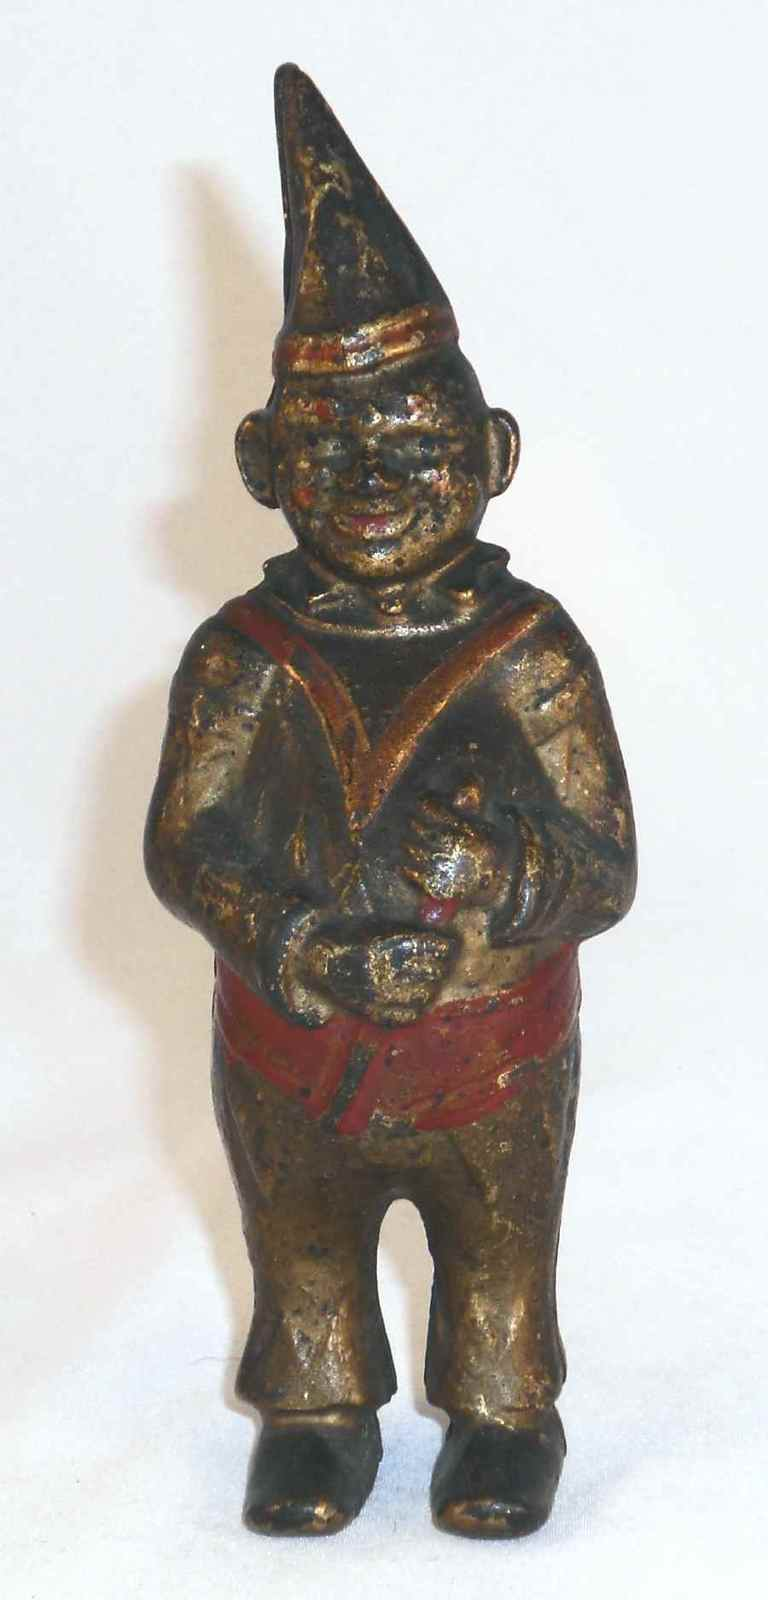 Old Cast Iron Still Penny Bank Clown in Pointed Hat Gold Red Colors AC Williams